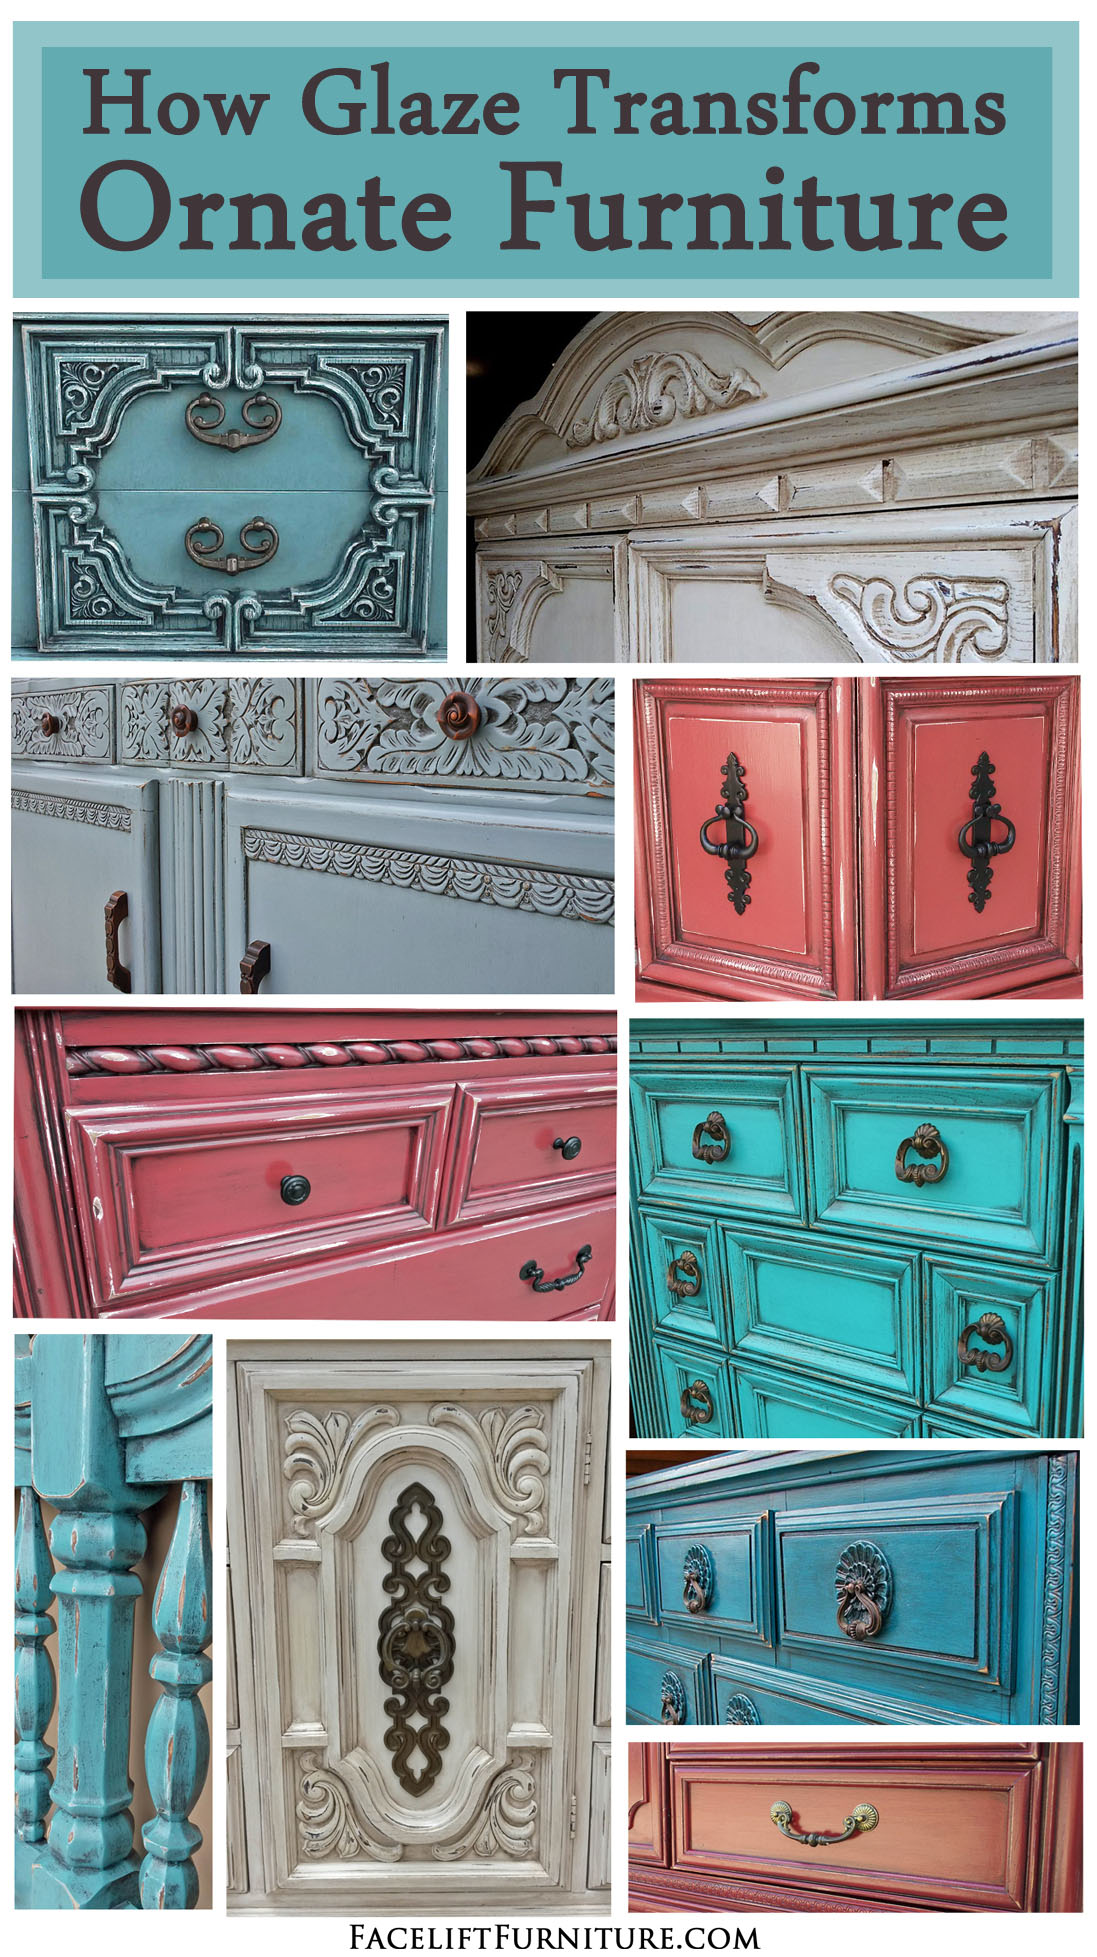 How Glaze Transforms Ornate Furniture ~ Facelift Furniture   https://www.faceliftfurniture.com/glaze-transforms-ornate-furniture/